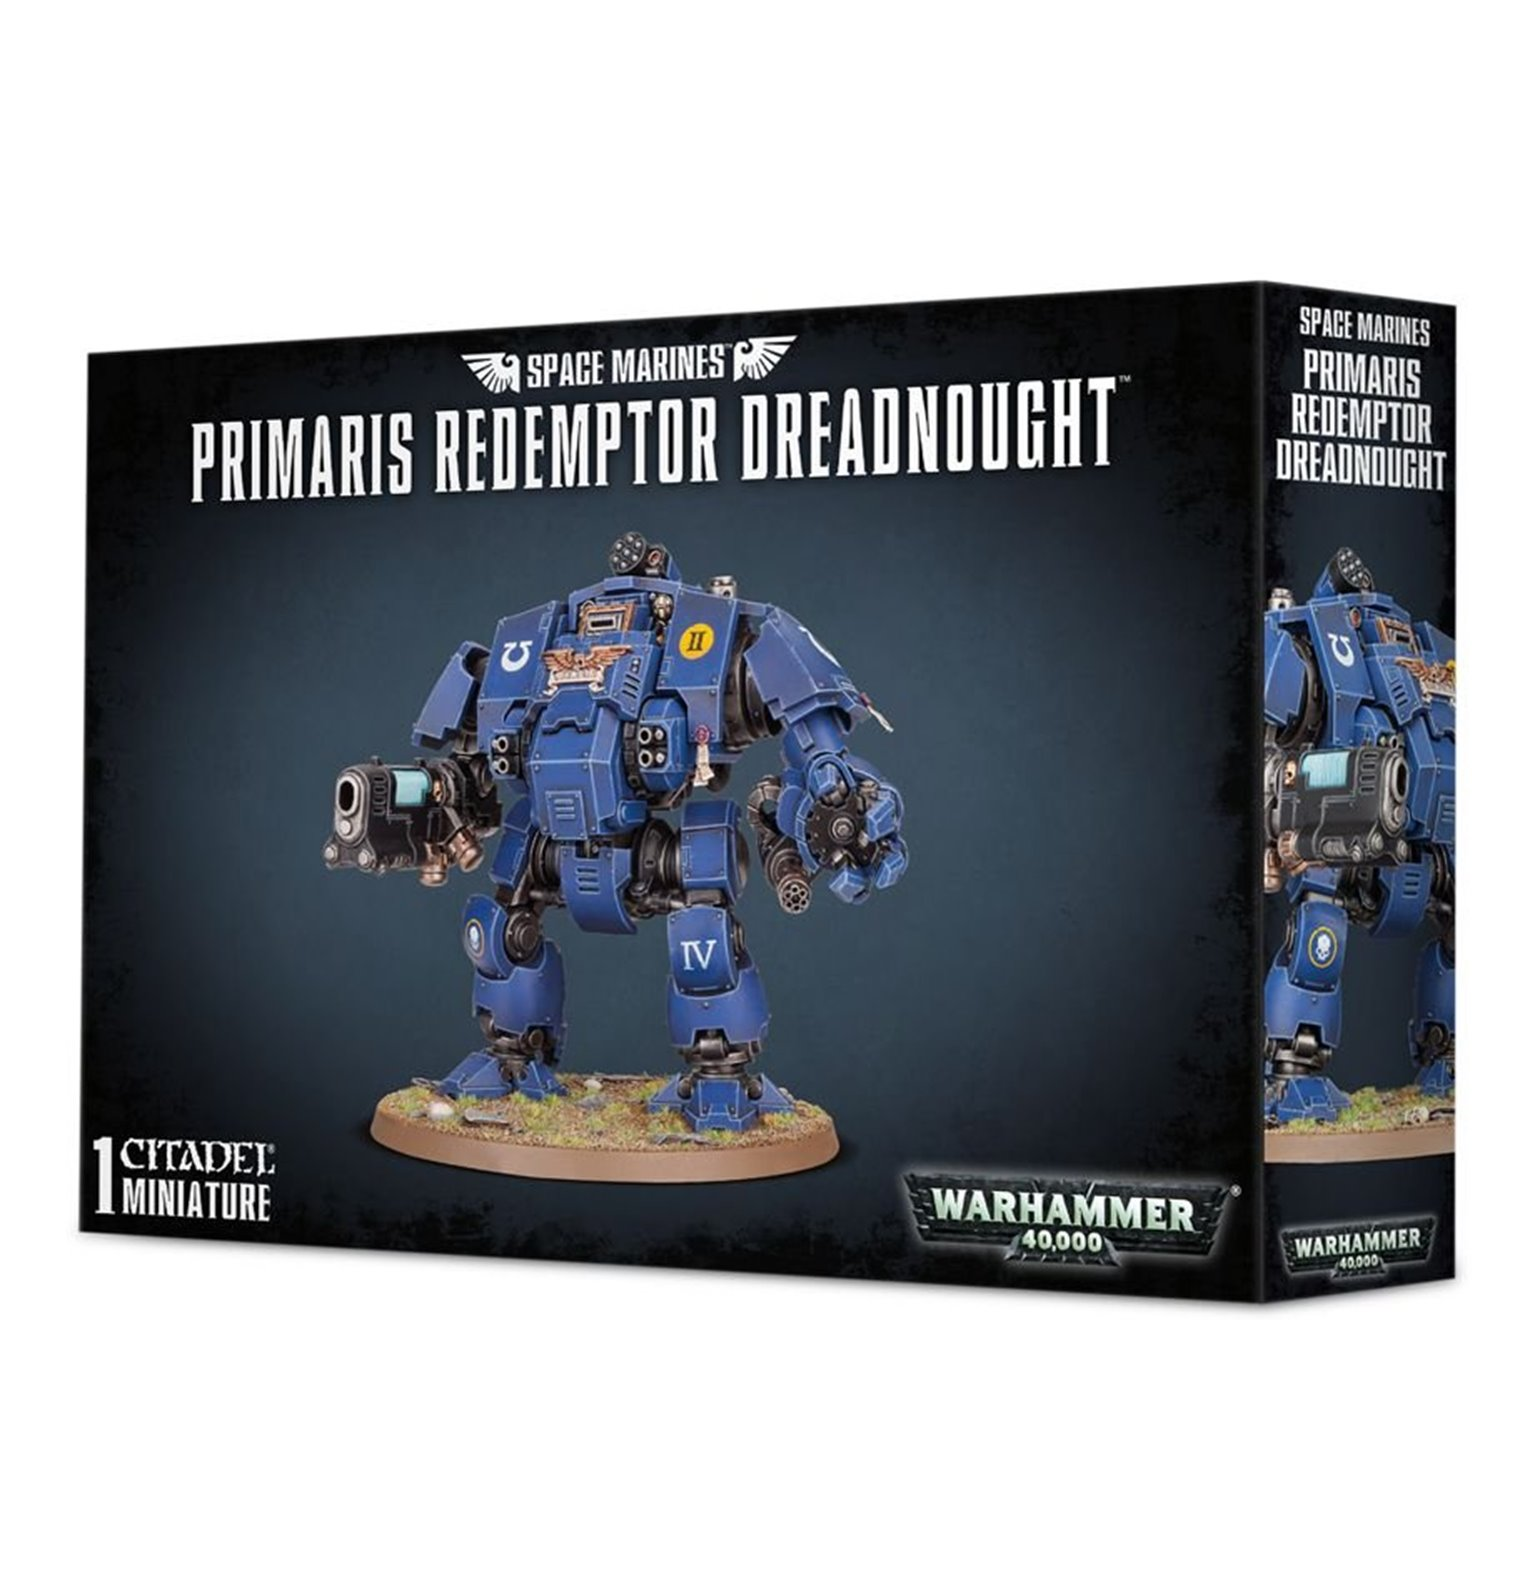 Warhammer 40,000 Space Marines Primaris Redemptor Dreadnought